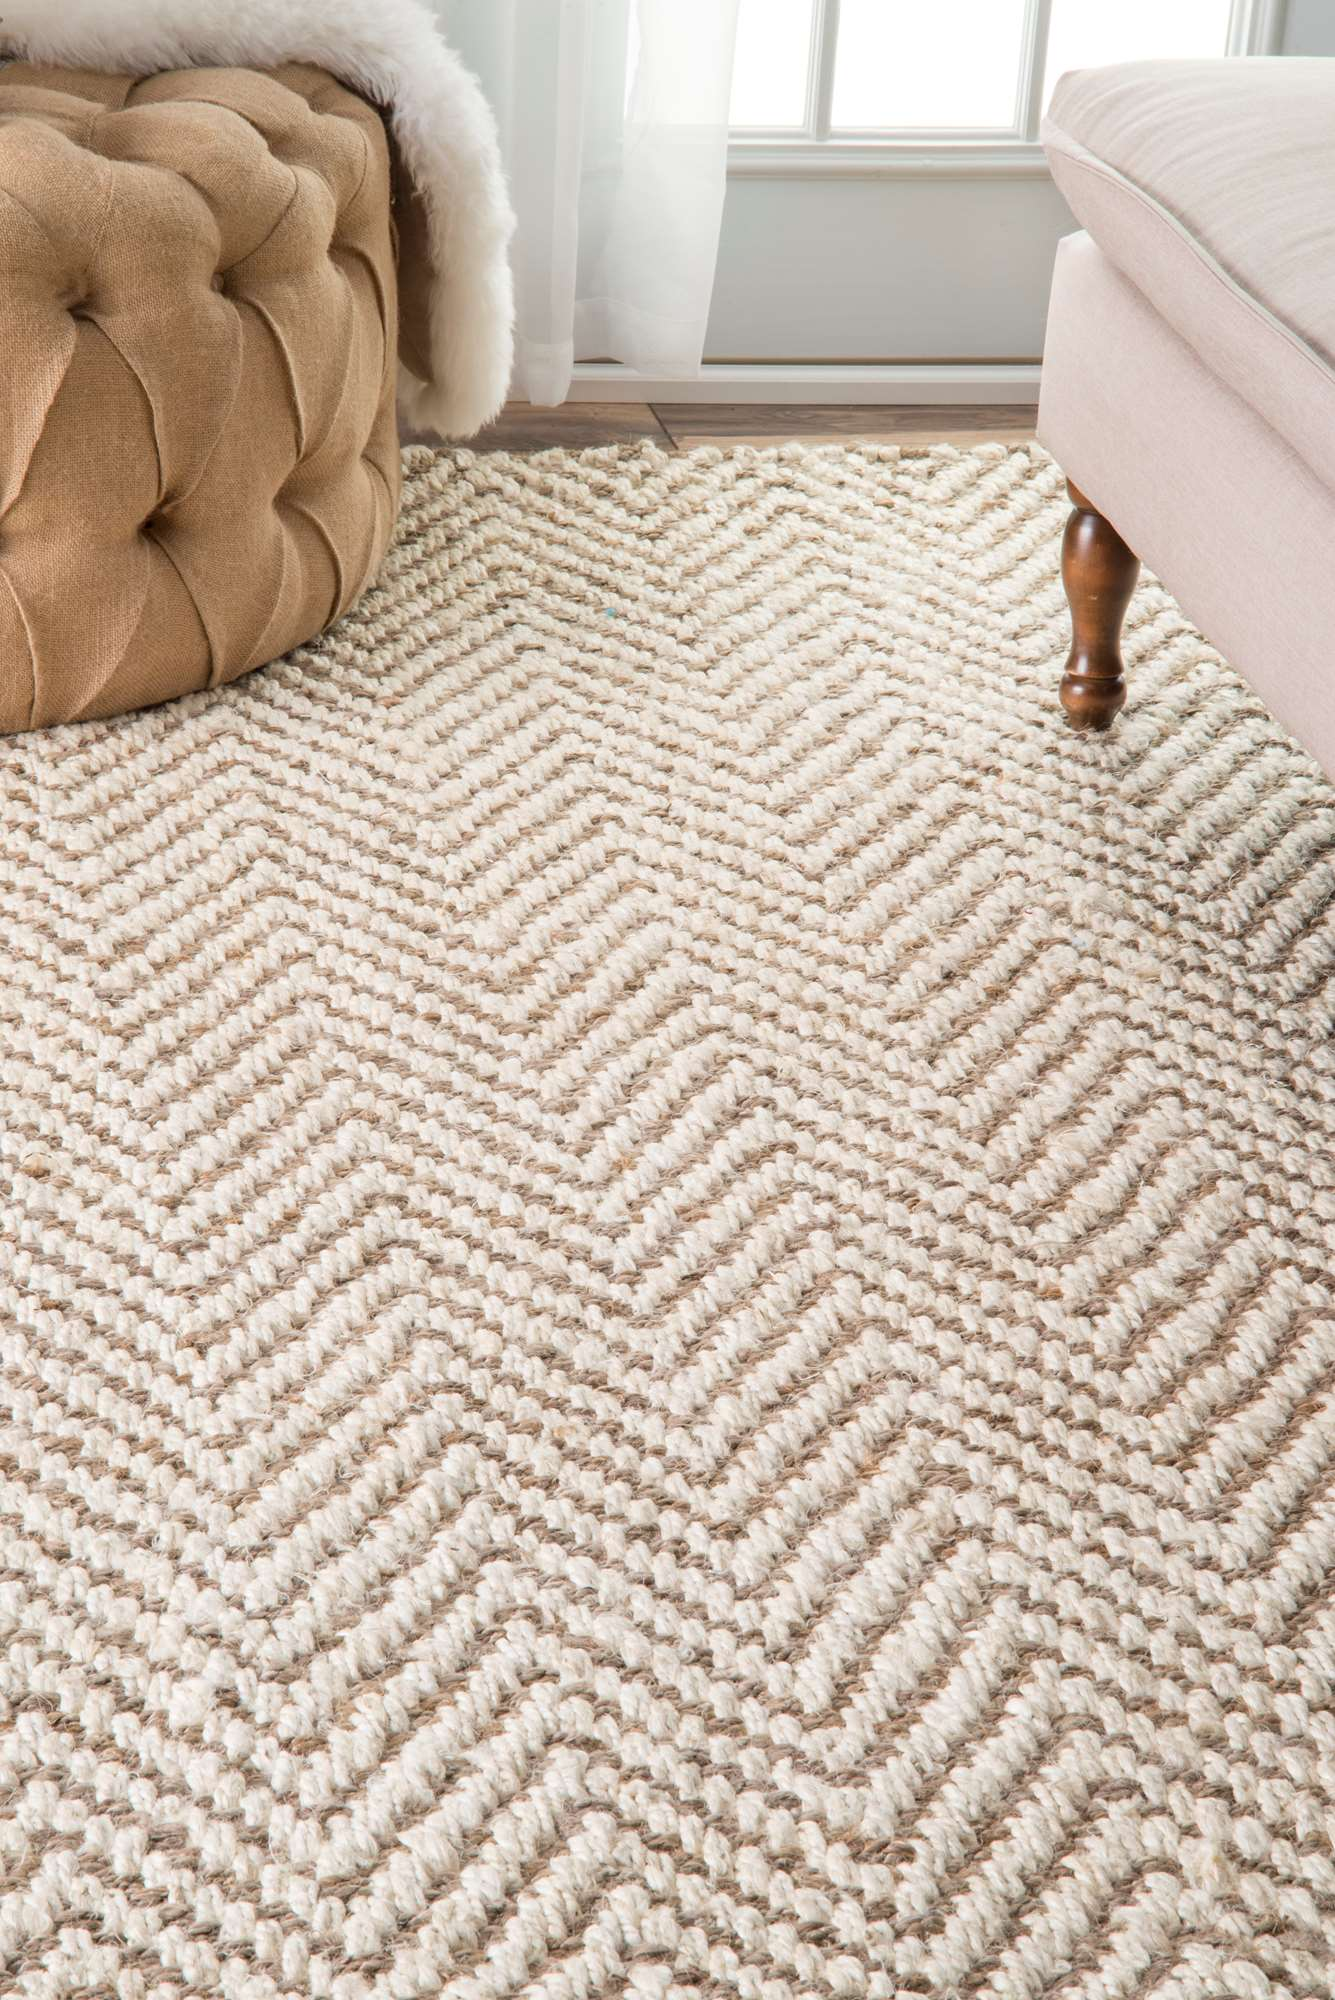 nuLOOM Bleached Vania Chevron Jute CLWA03A Area Rug